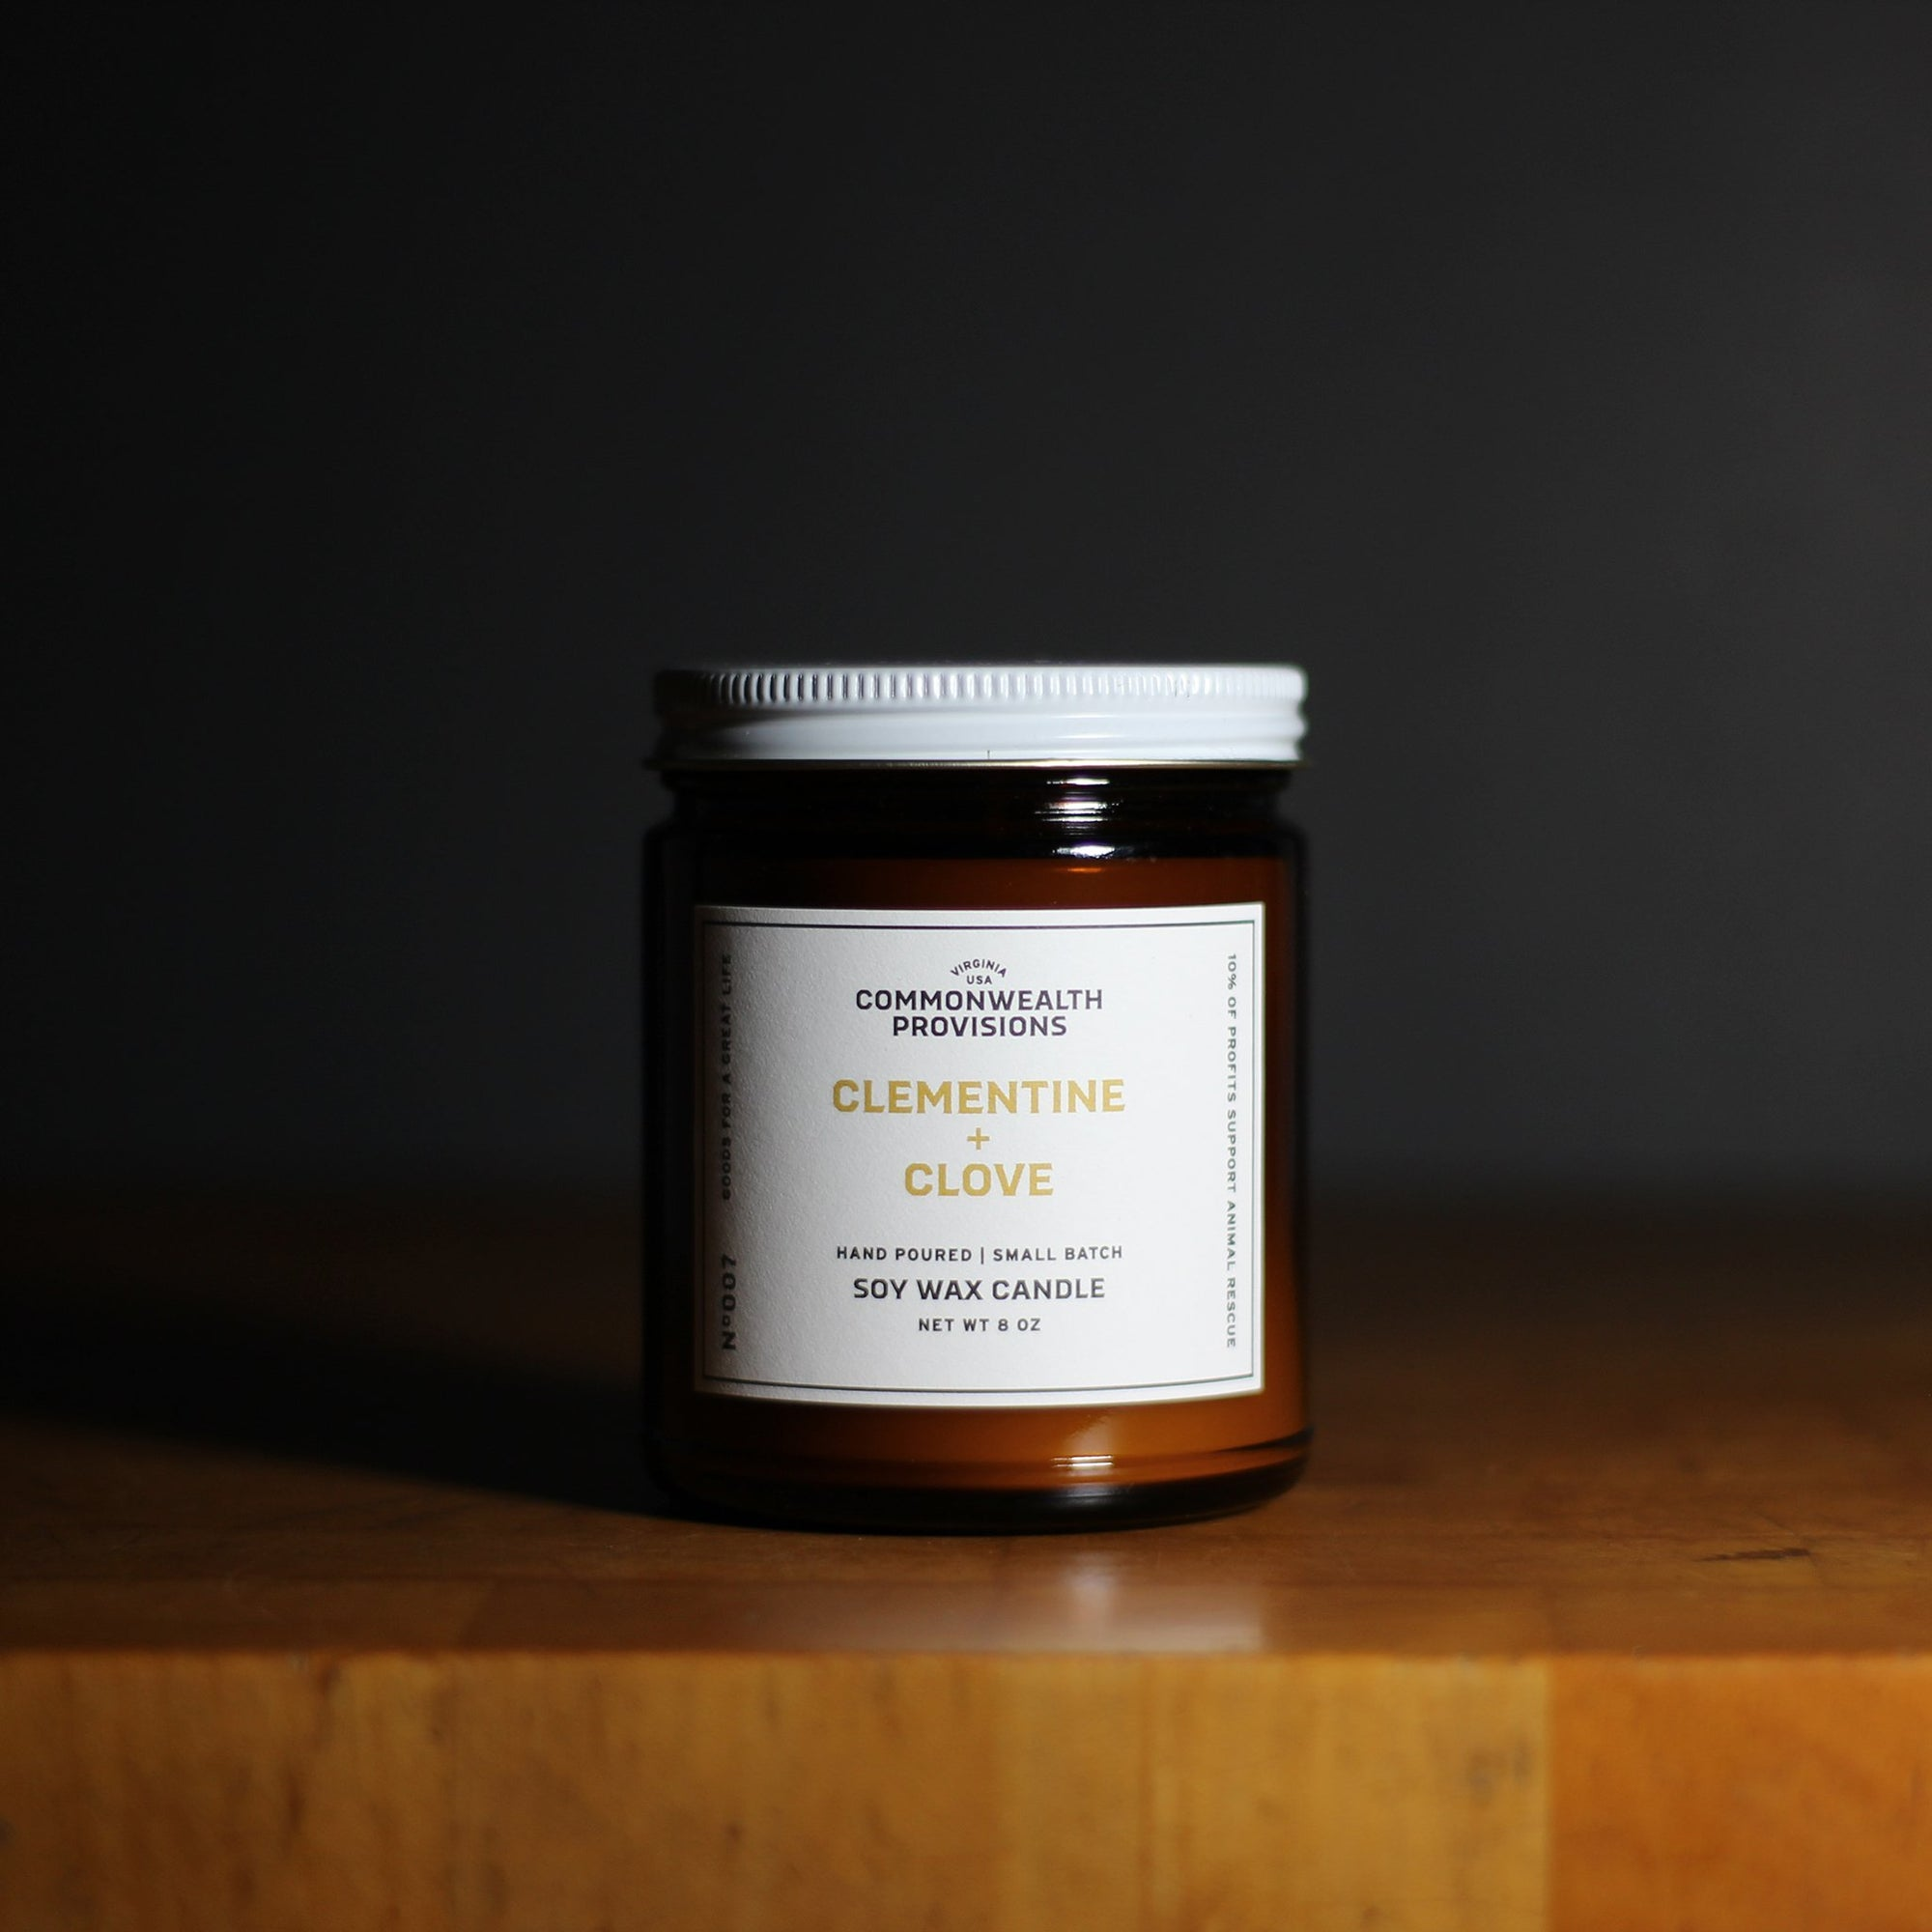 Commonwealth Provisions Clementine + Clove Candle